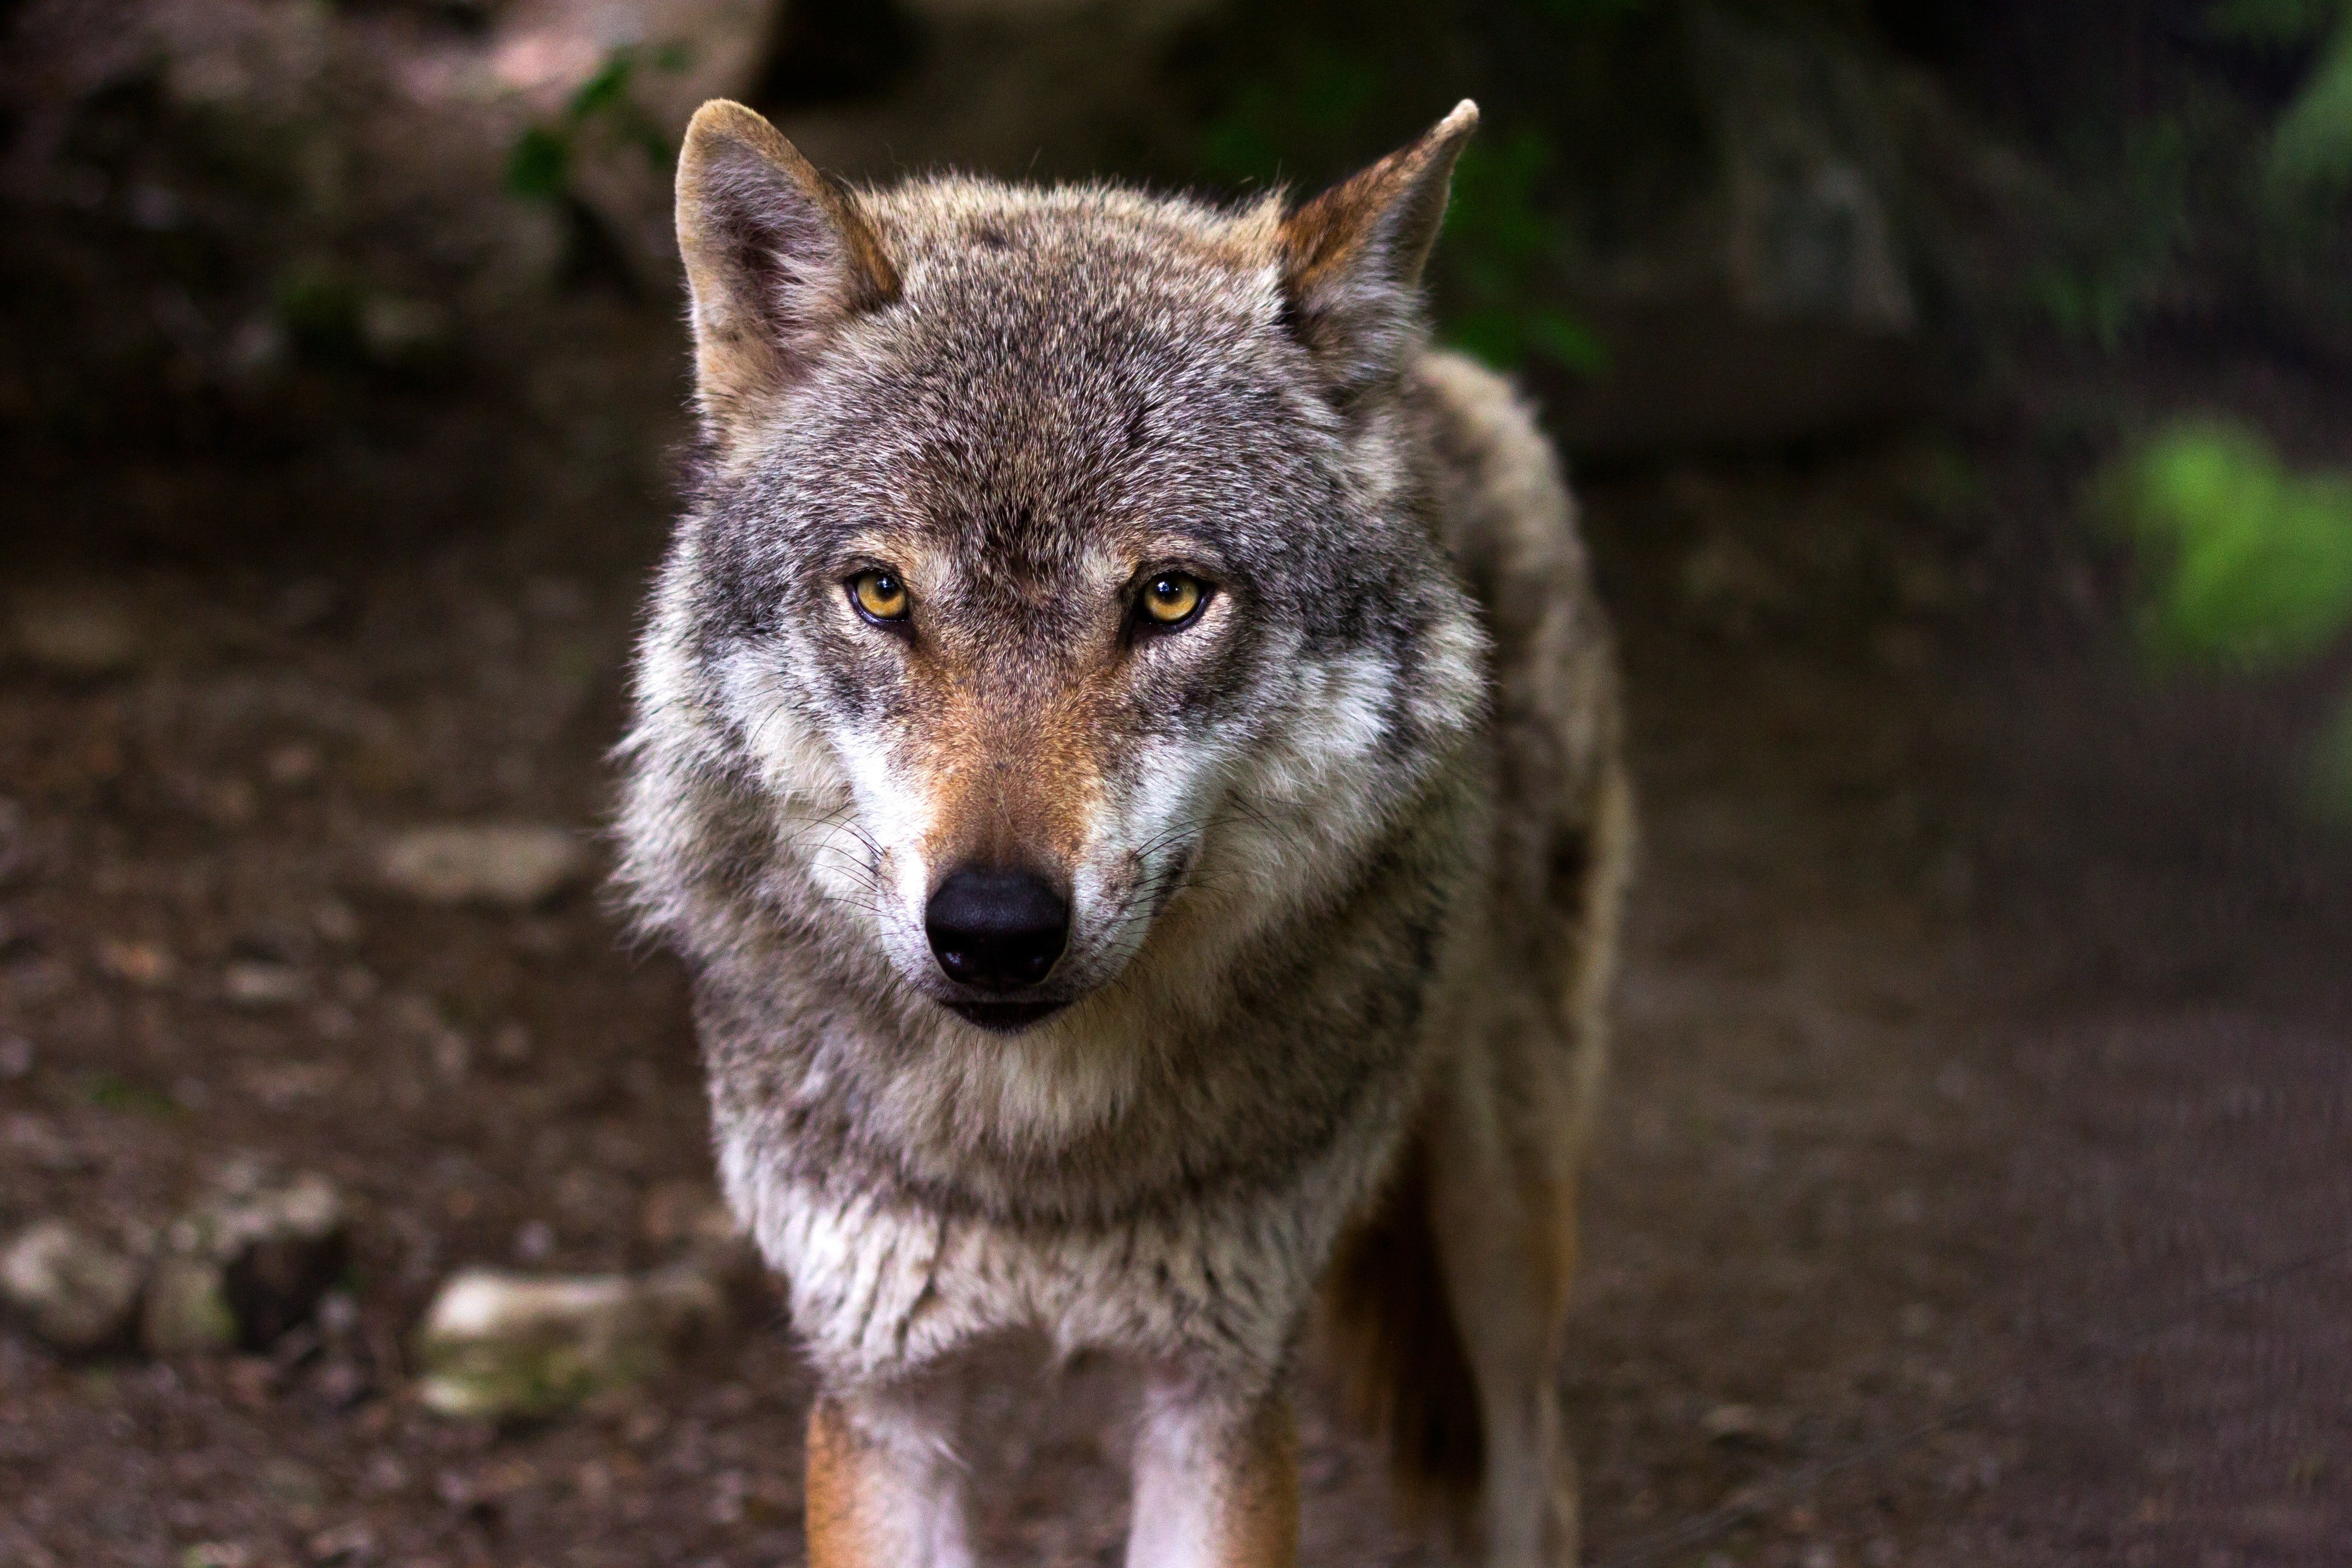 Pictured - An image of a gray and white wolf in the woods   Source: Pexels